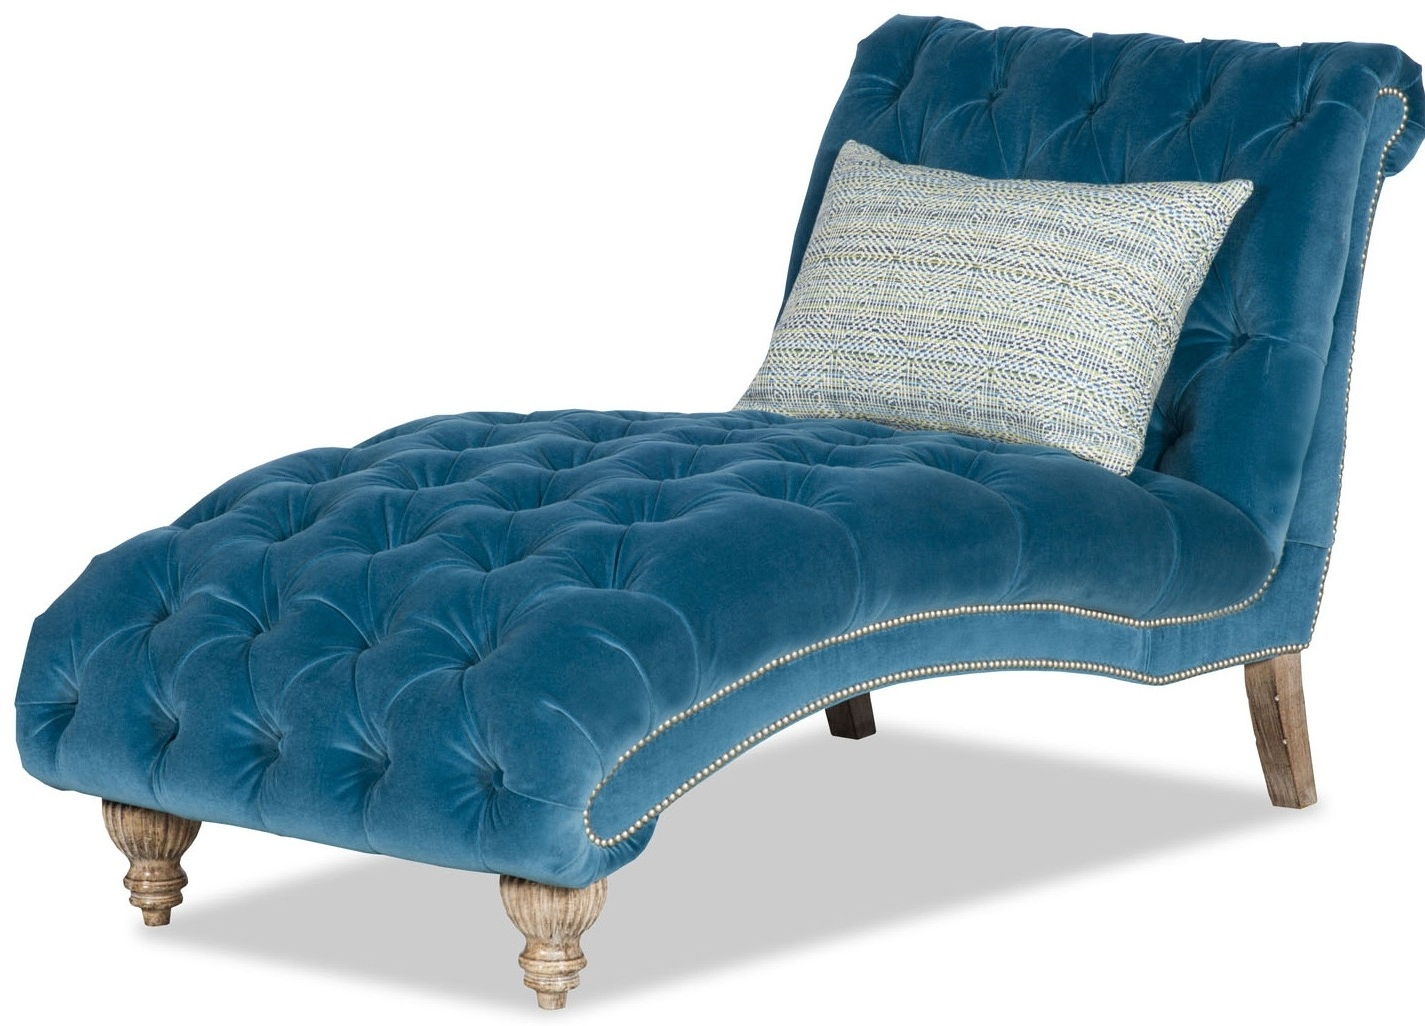 Peacock Blue Chaise Lounge With Regard To Well Known Turquoise Chaise Lounges (View 11 of 15)